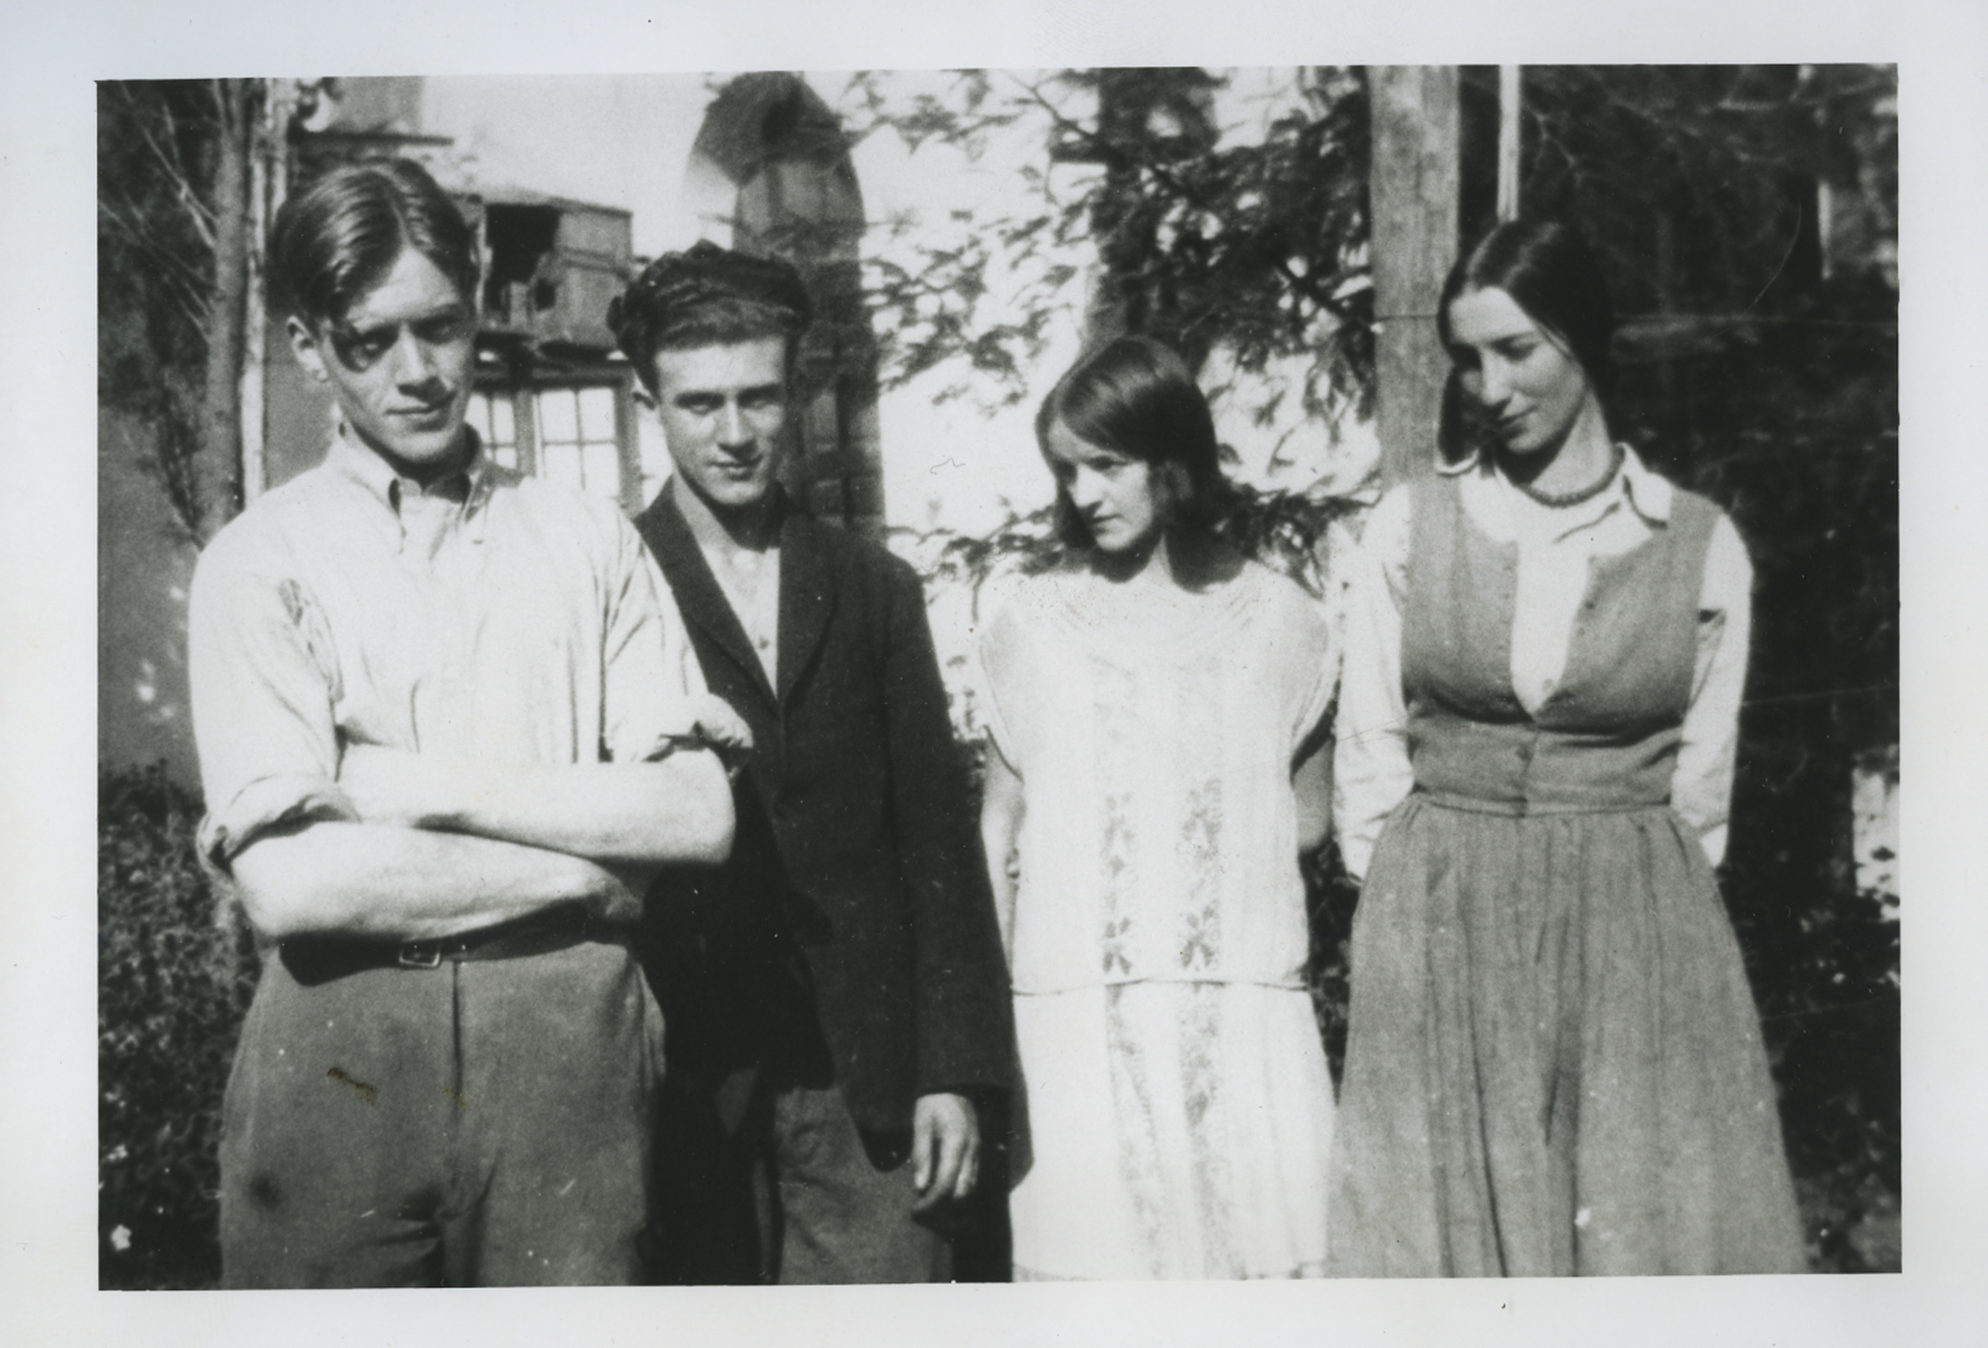 Winifred Knights (right), with Barbara Hepworth, J. R. Skeaping, and Tom Monnington (left), BSR Courtyard, 1925. BSR Fine Arts Archive